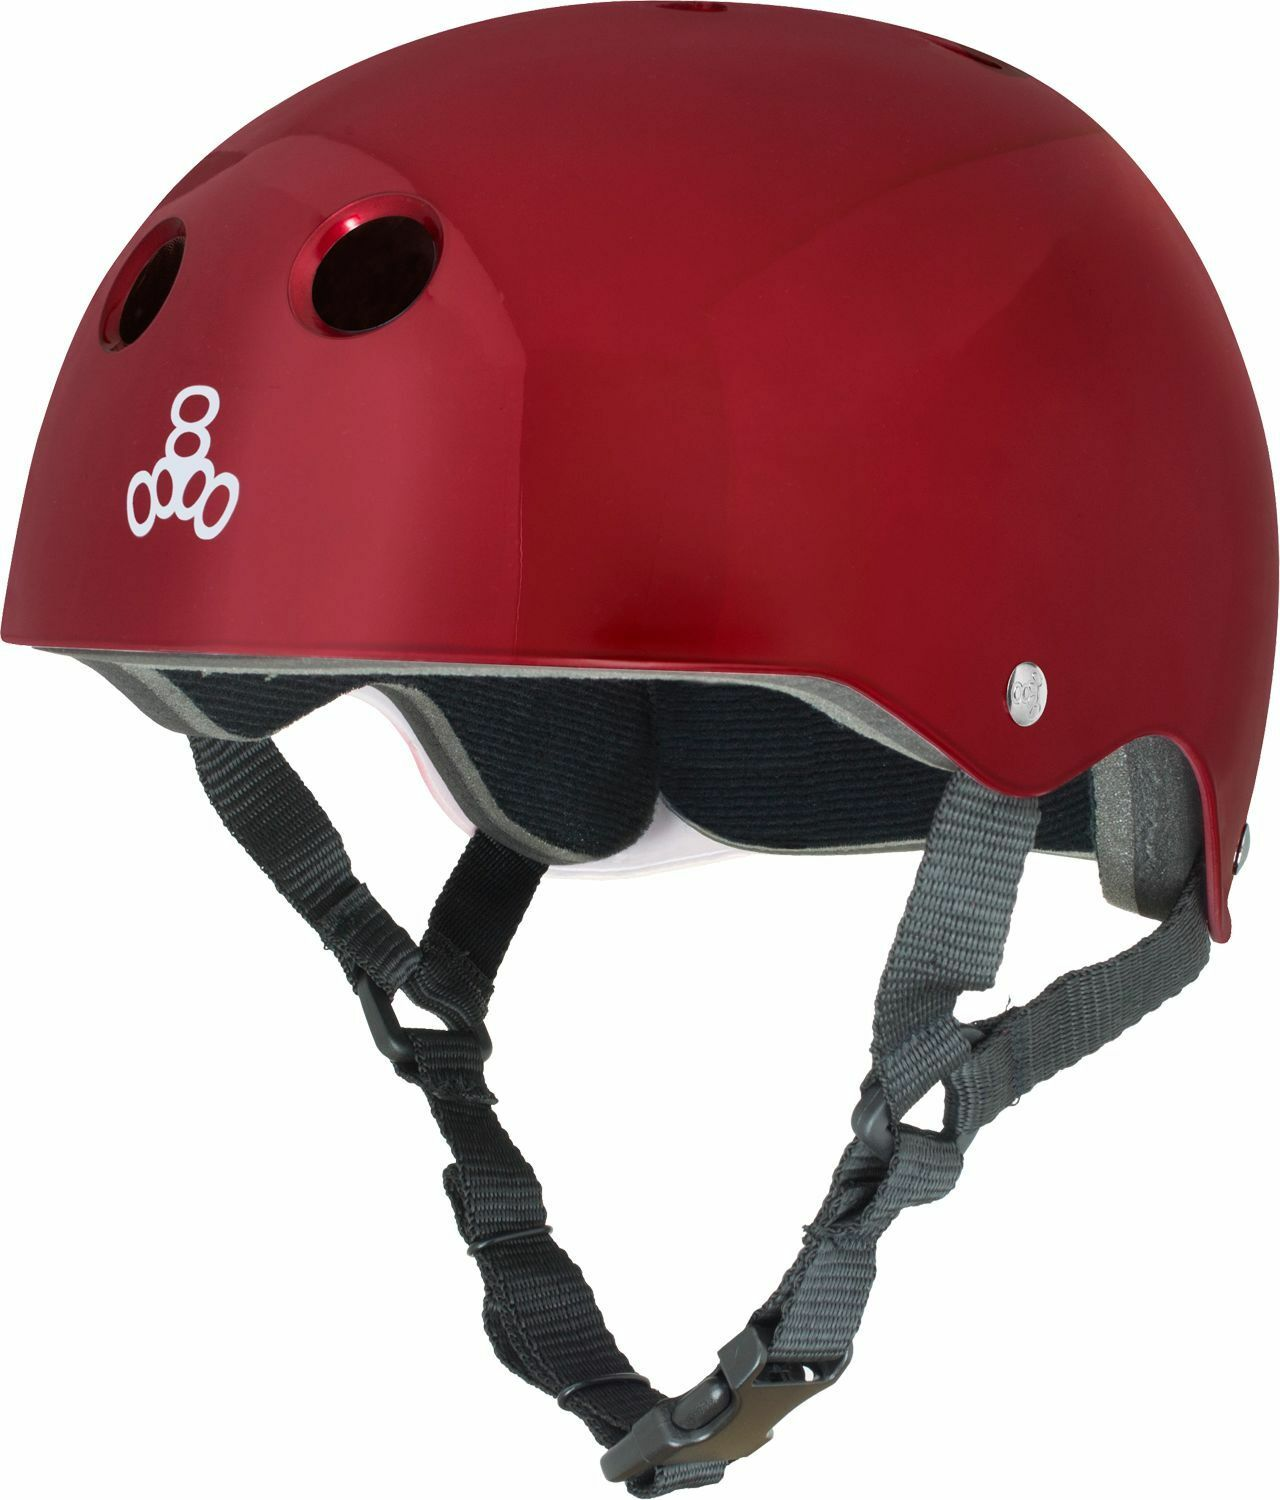 Triple 8 Helmet Red Metallic Std.Liner L